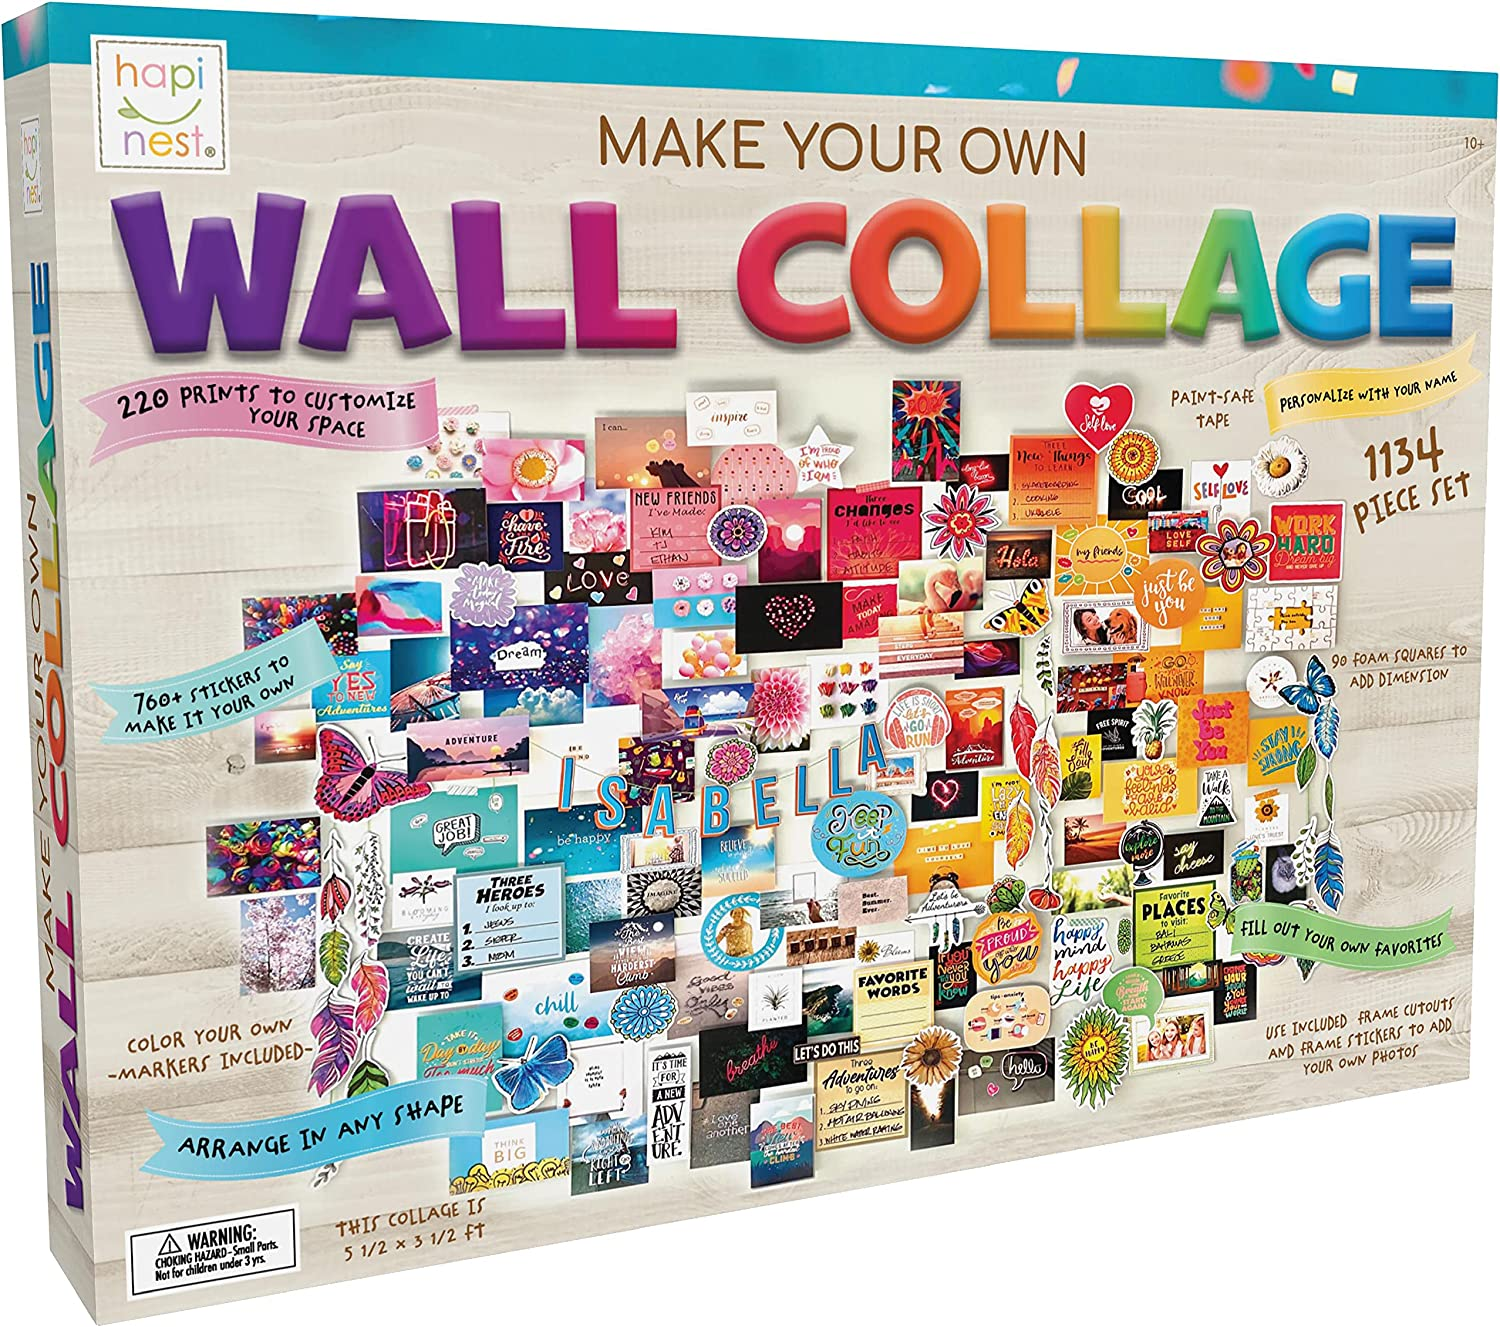 DIY Wall Collage Craft Kit For Tweens And Teens